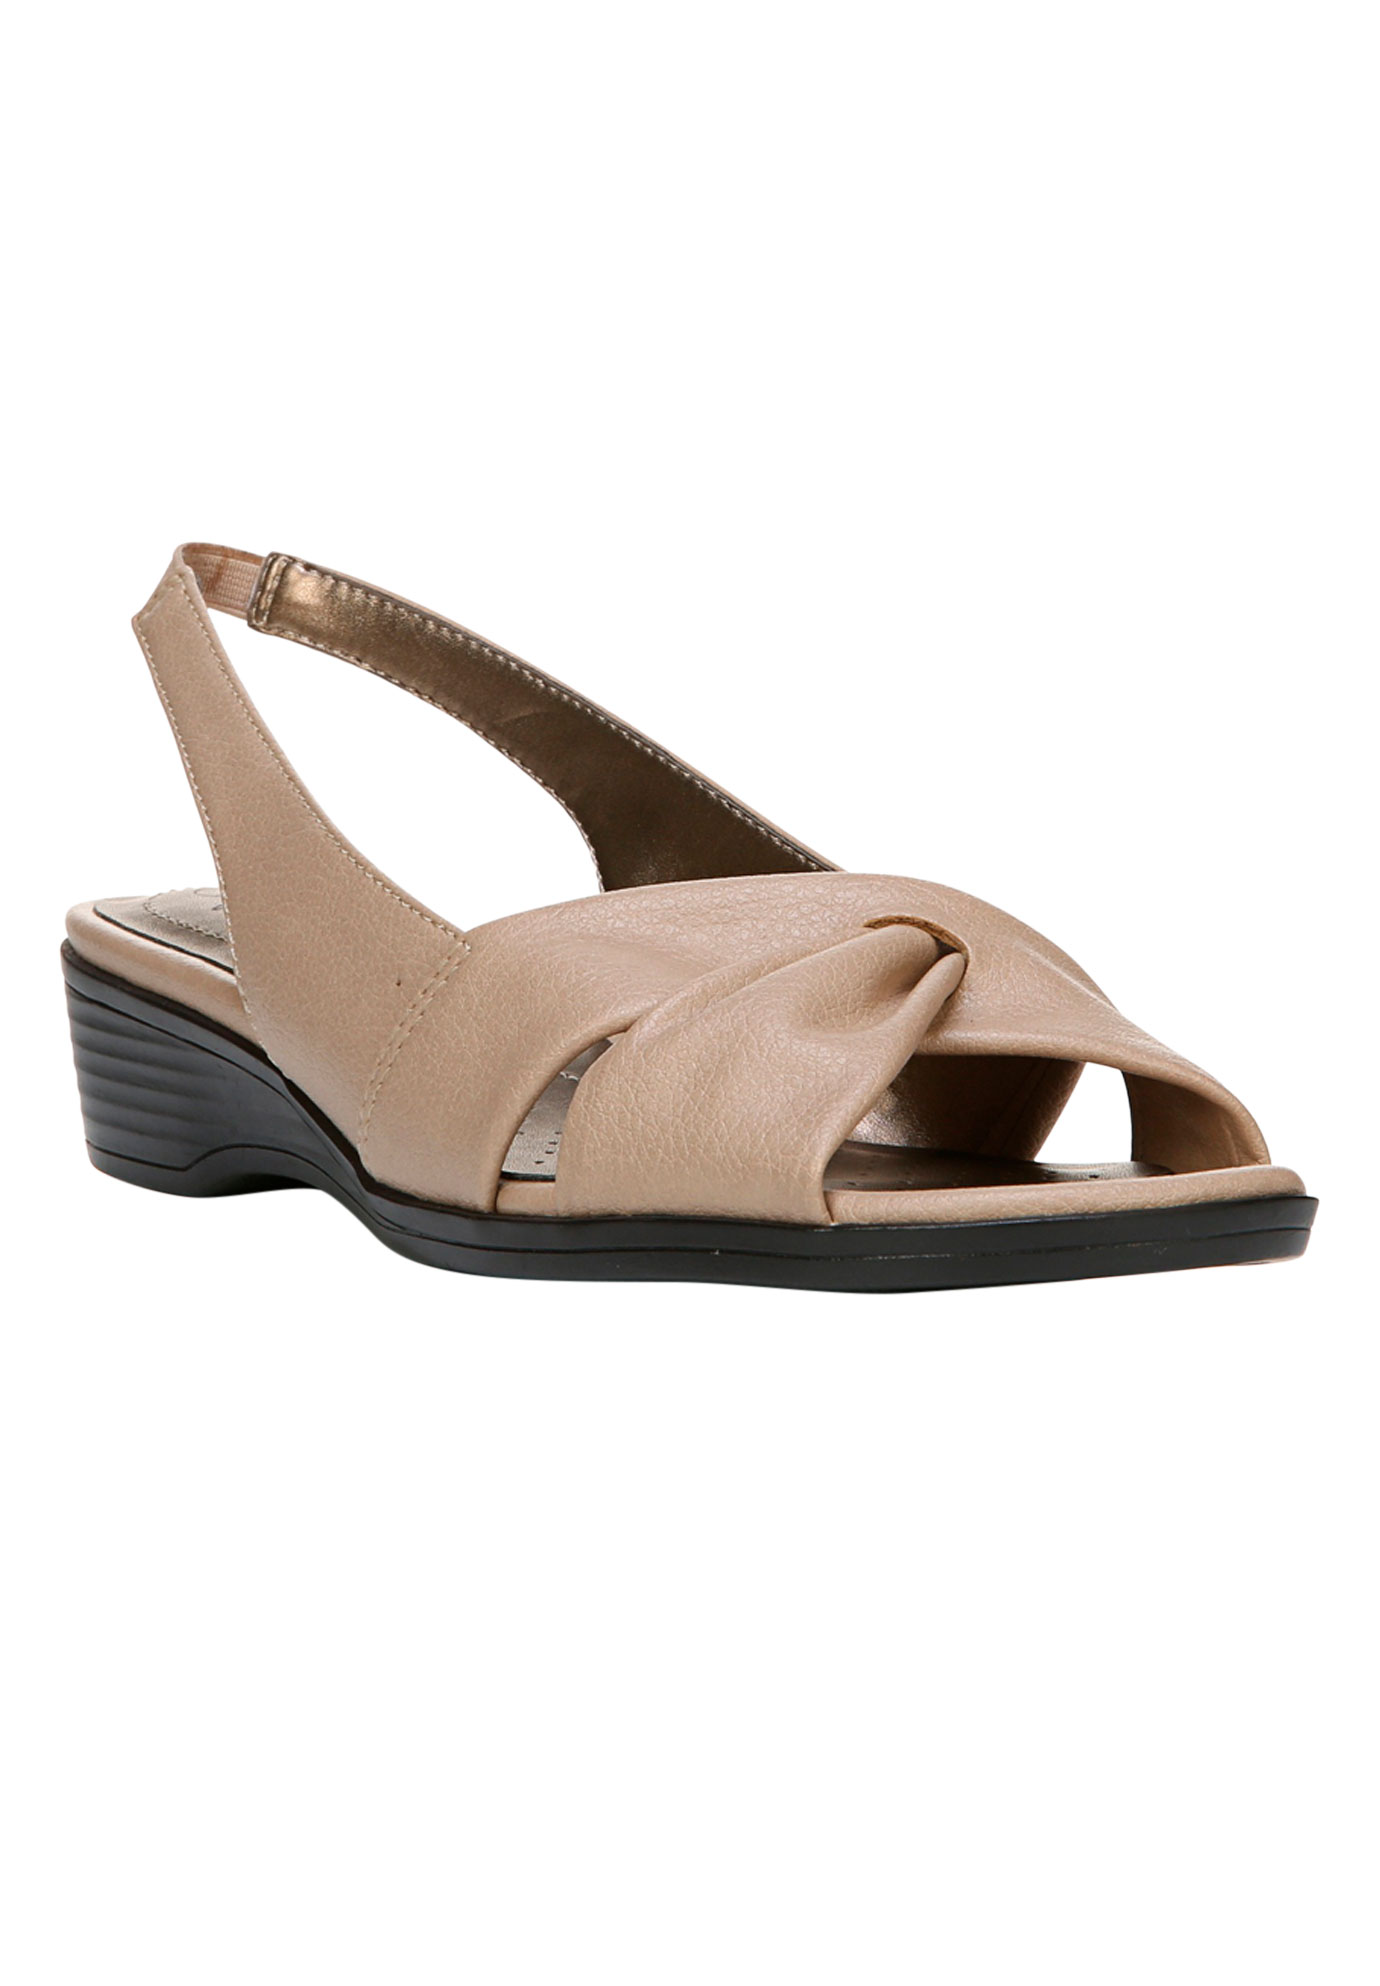 shop for for sale Mimosa 2 Sandals by LifeStride® cheap price in China 05iGIiO